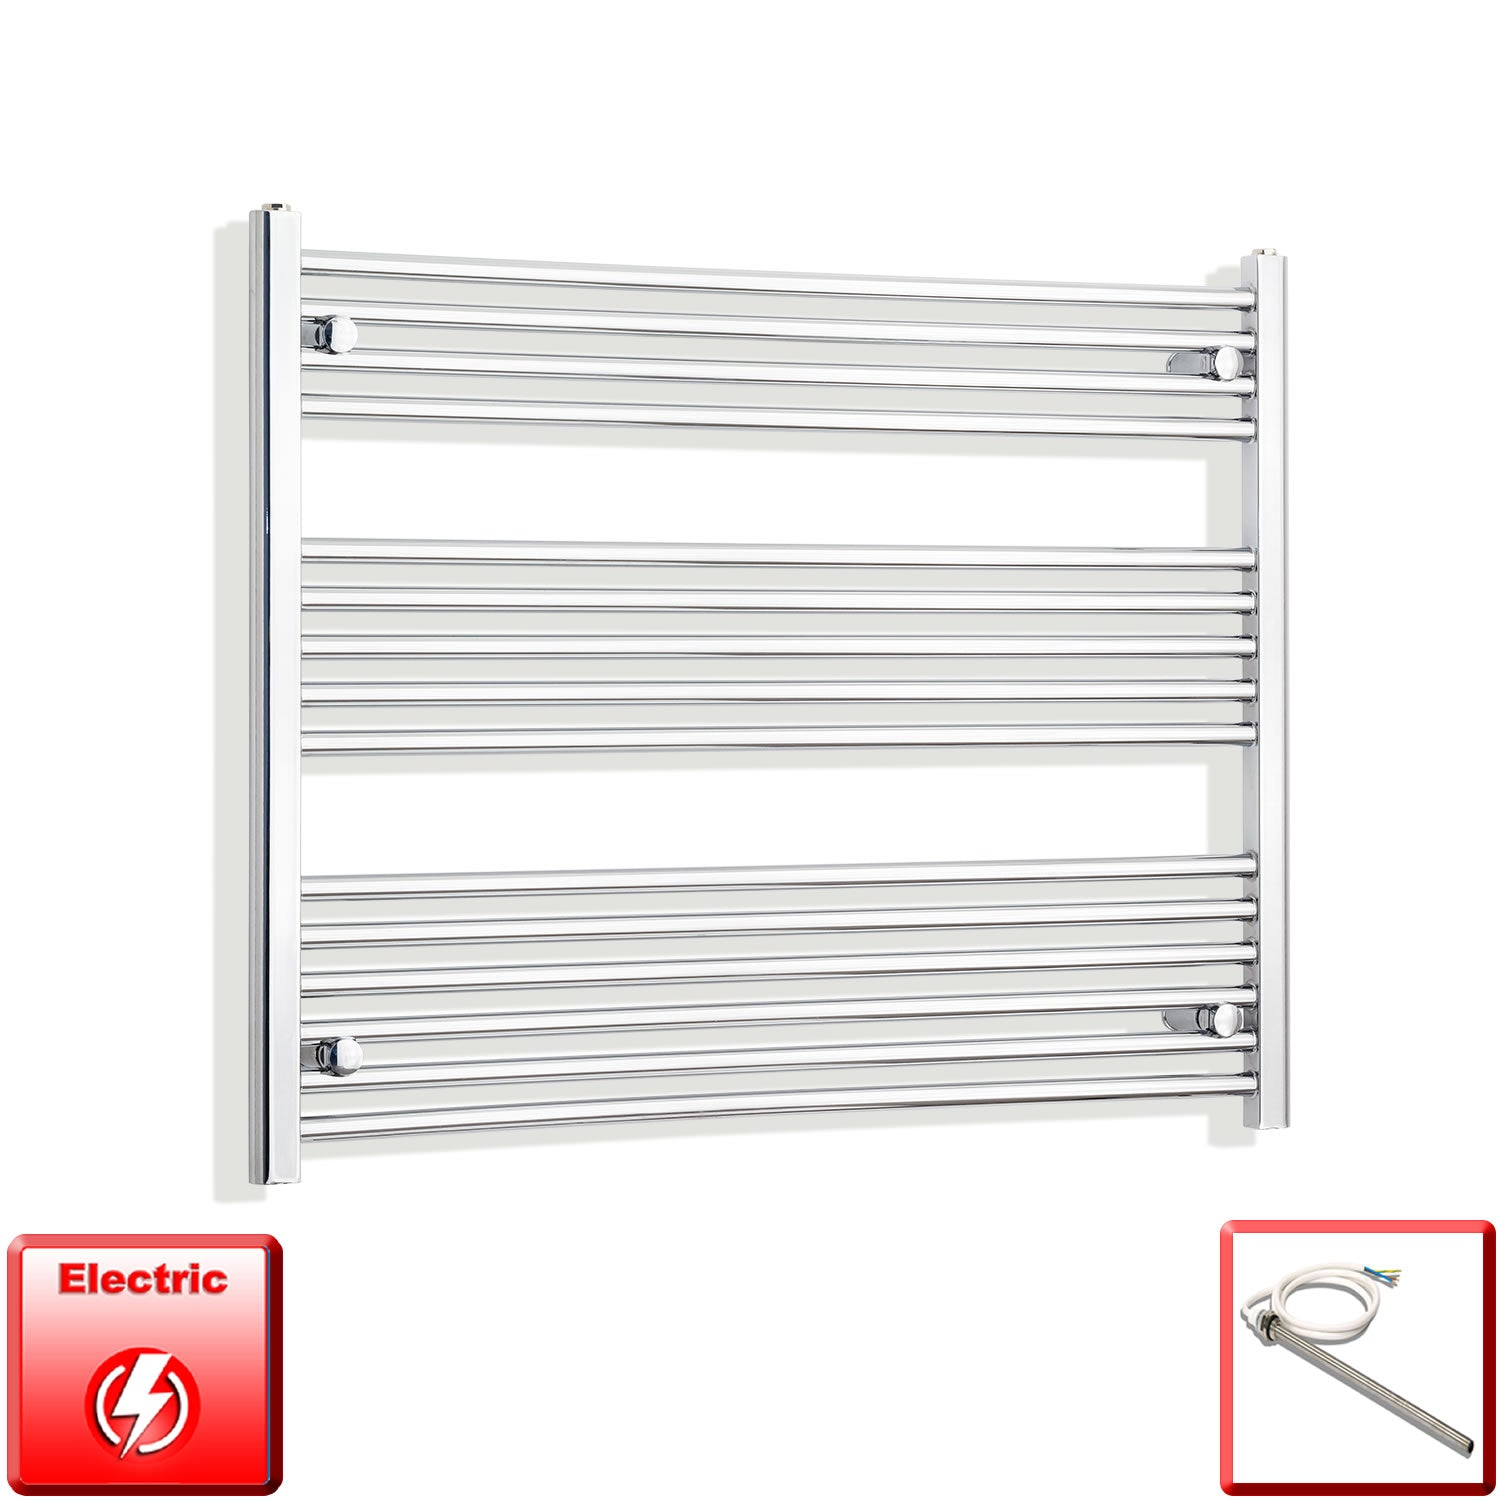 950mm Wide 800mm High Pre-Filled Chrome Electric Towel Rail Radiator With Single Heat Element